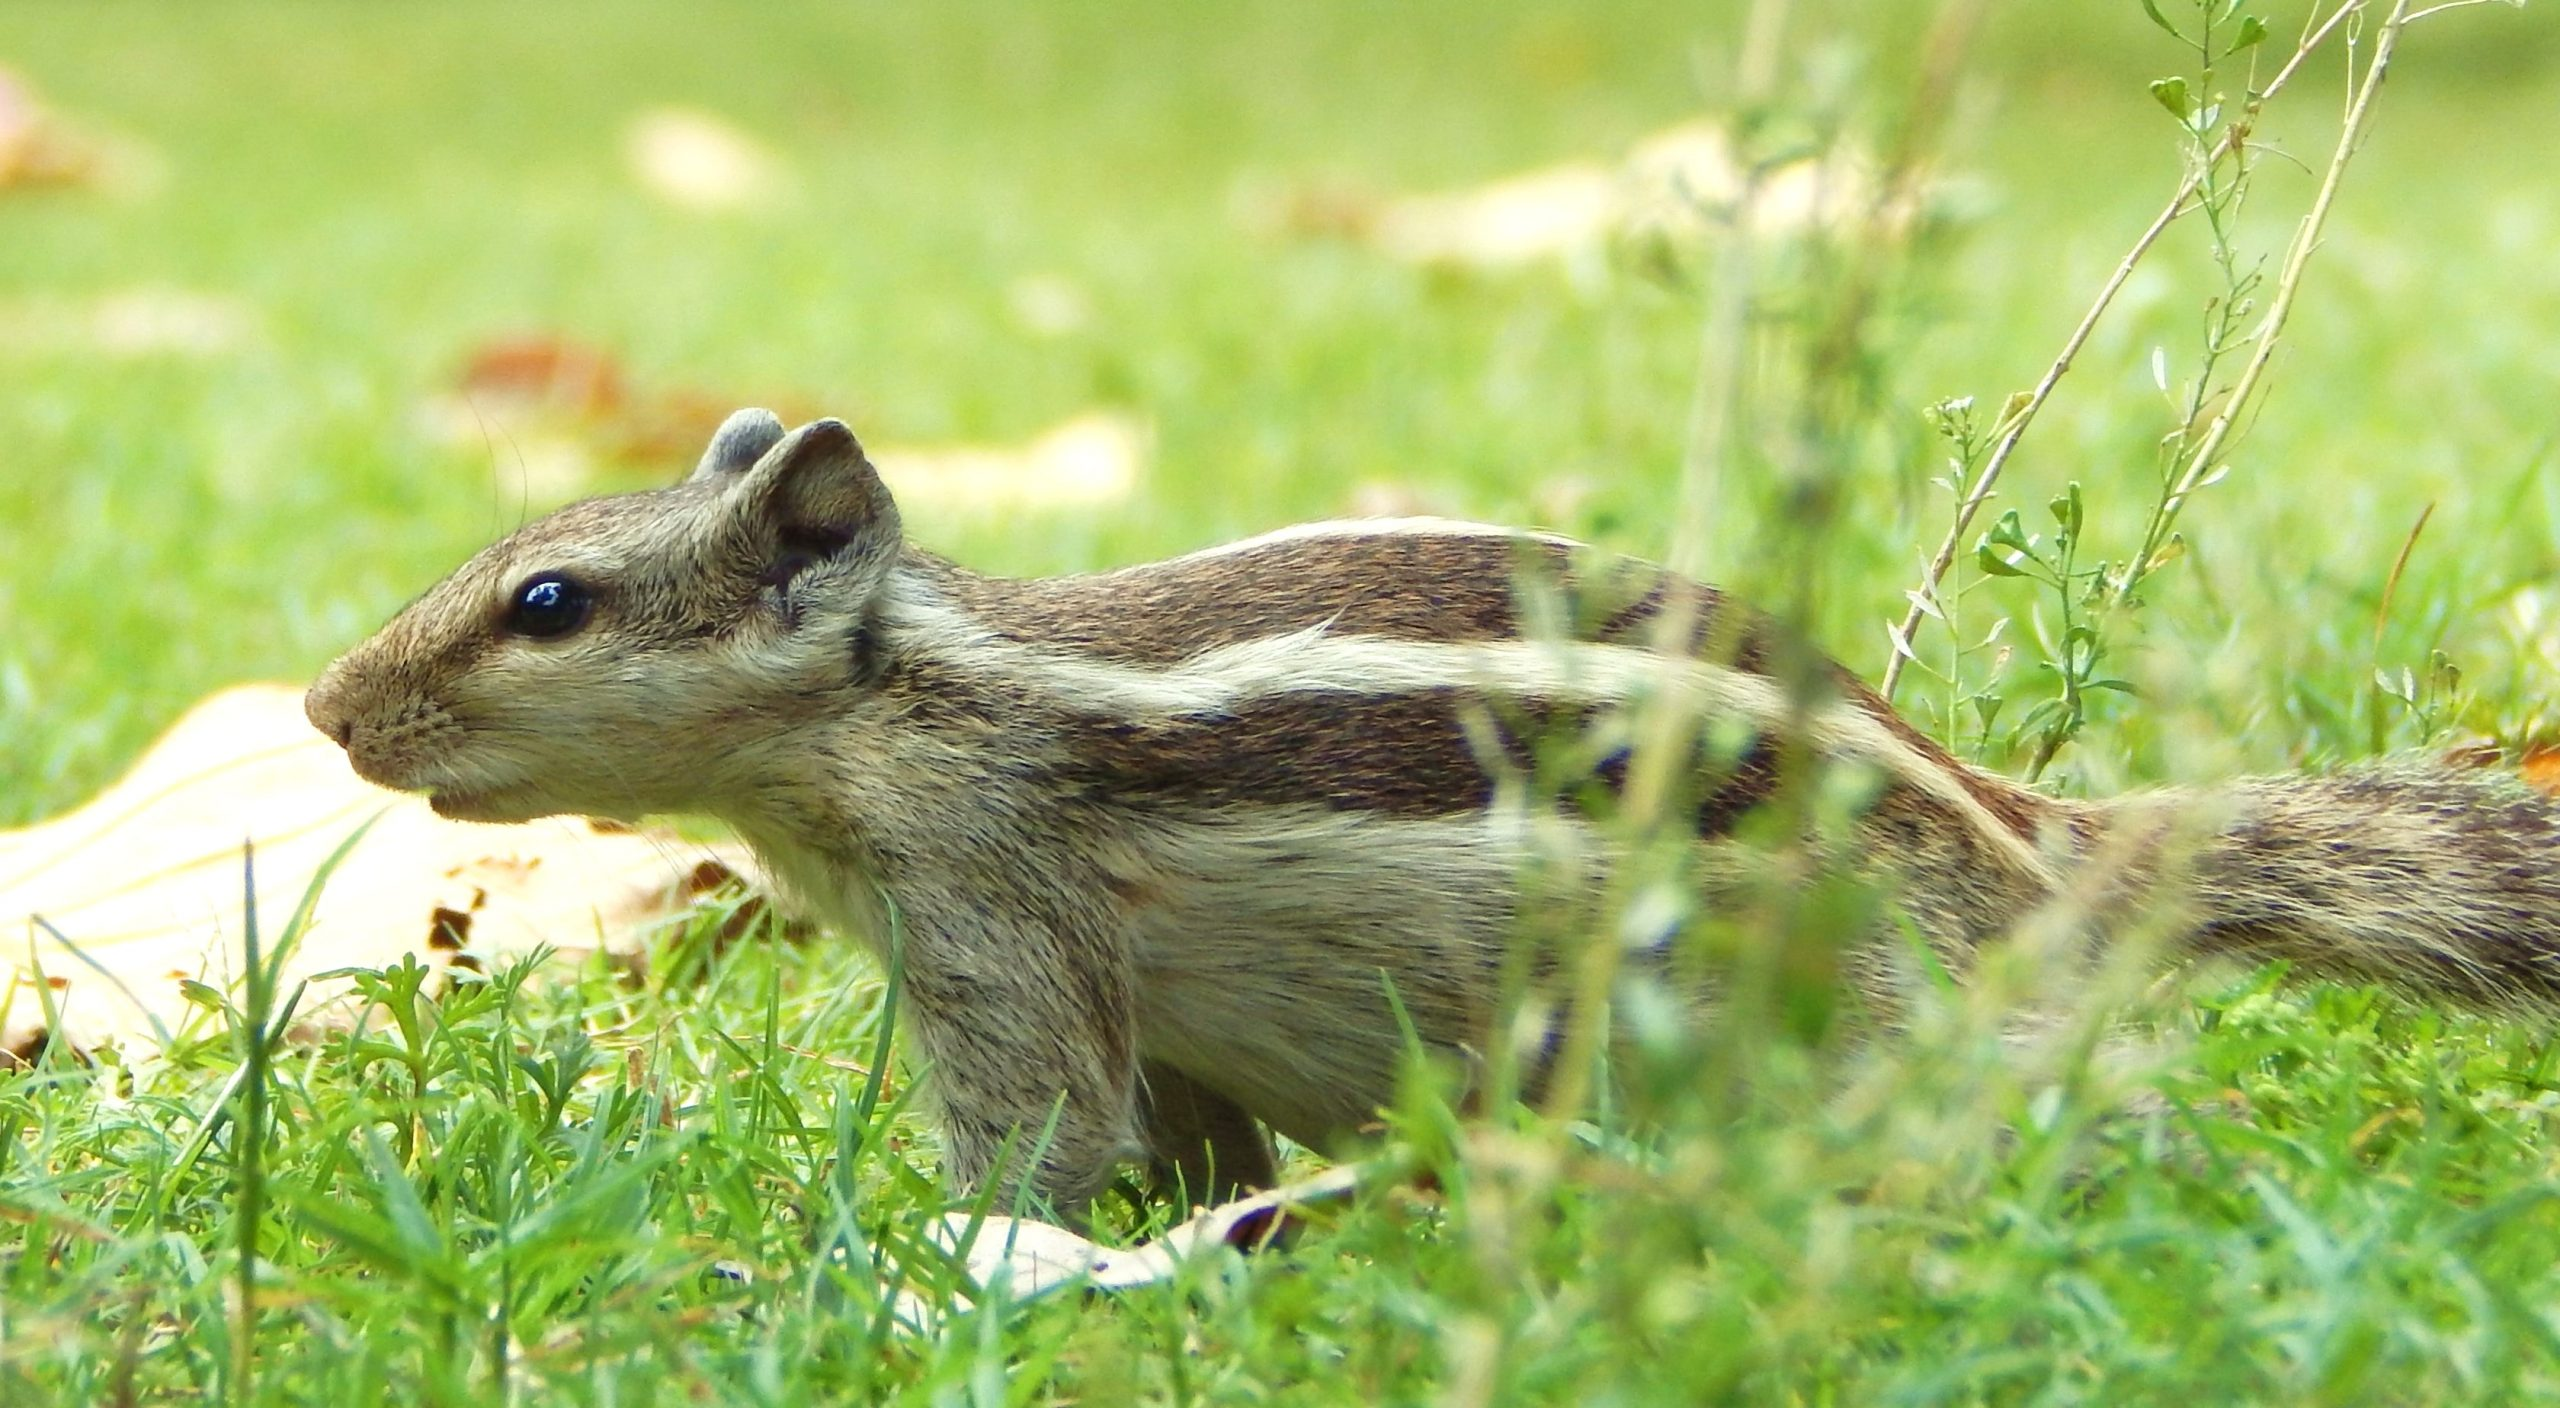 A squirrel playing in the grass